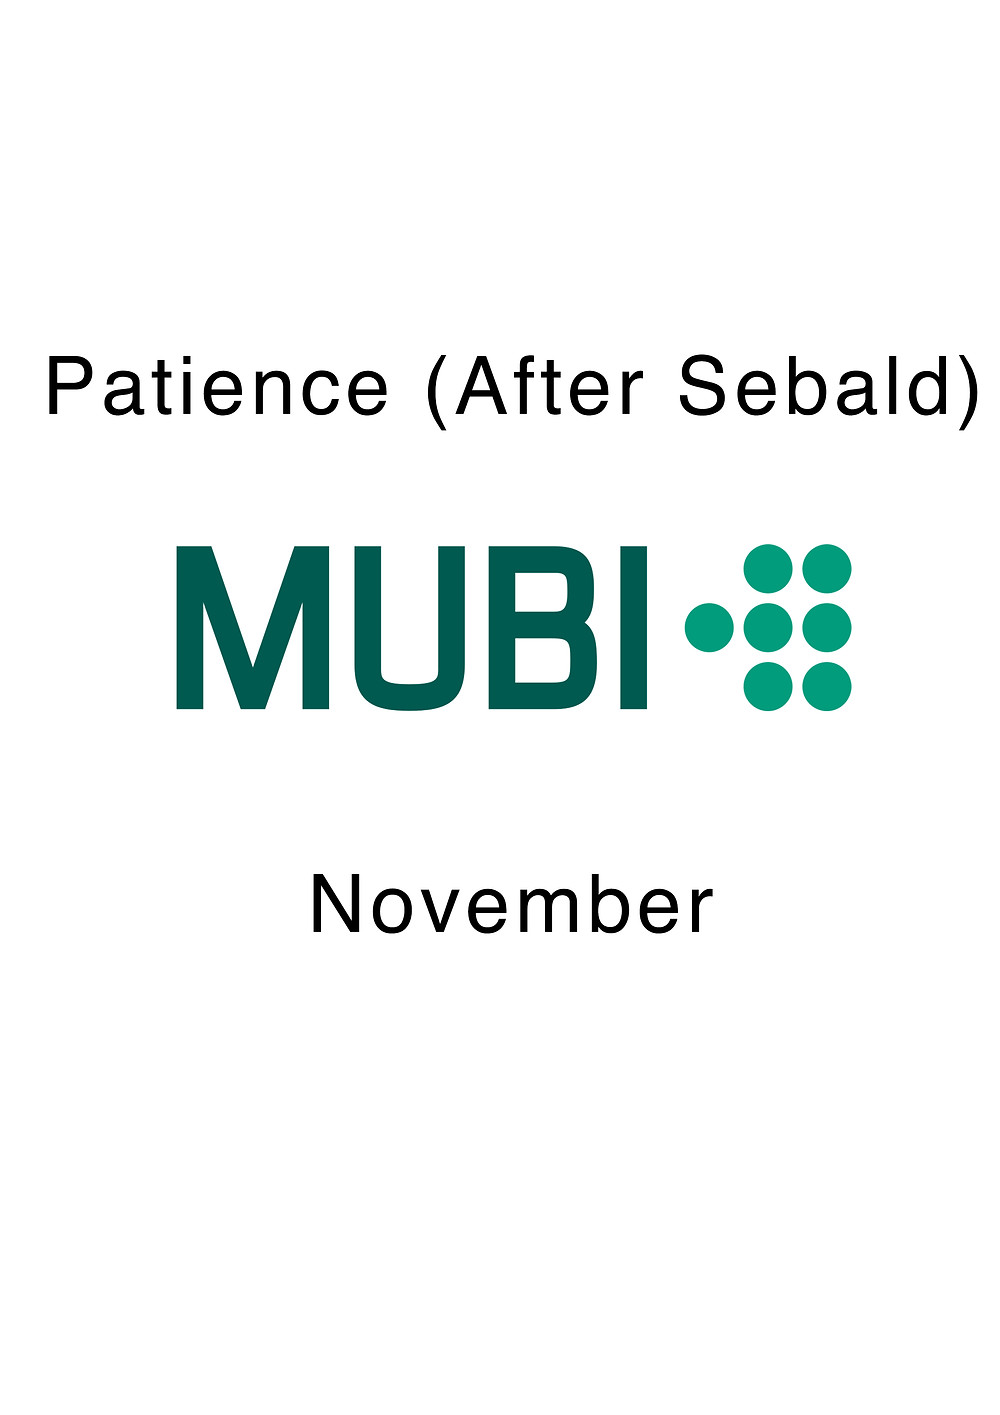 Patience (After Sebald) available to view on Mubi throughout November 2018. All territories outside the US.